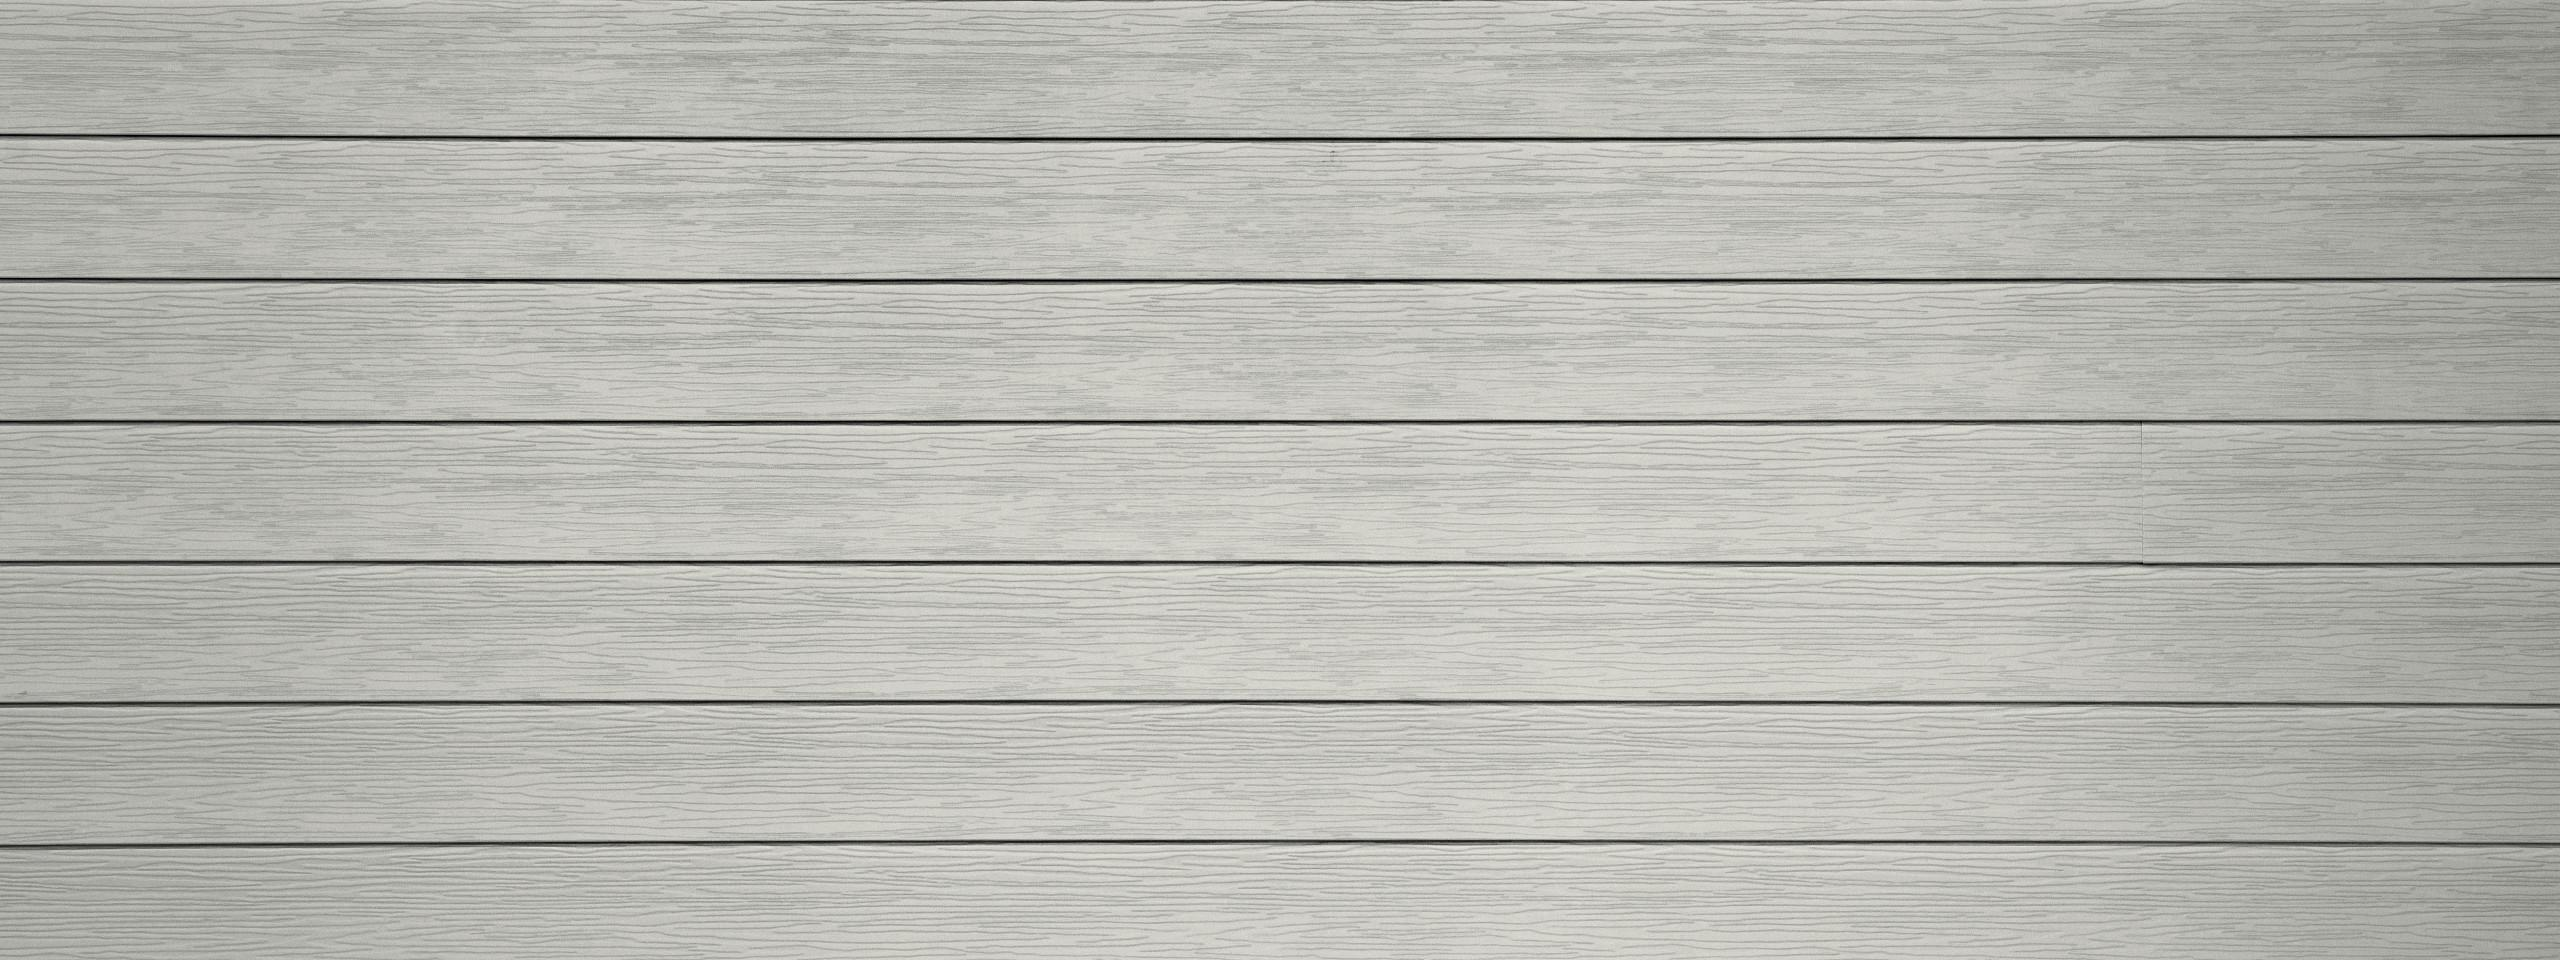 Edco Steel Siding Pvc Coated Edco Products Made In